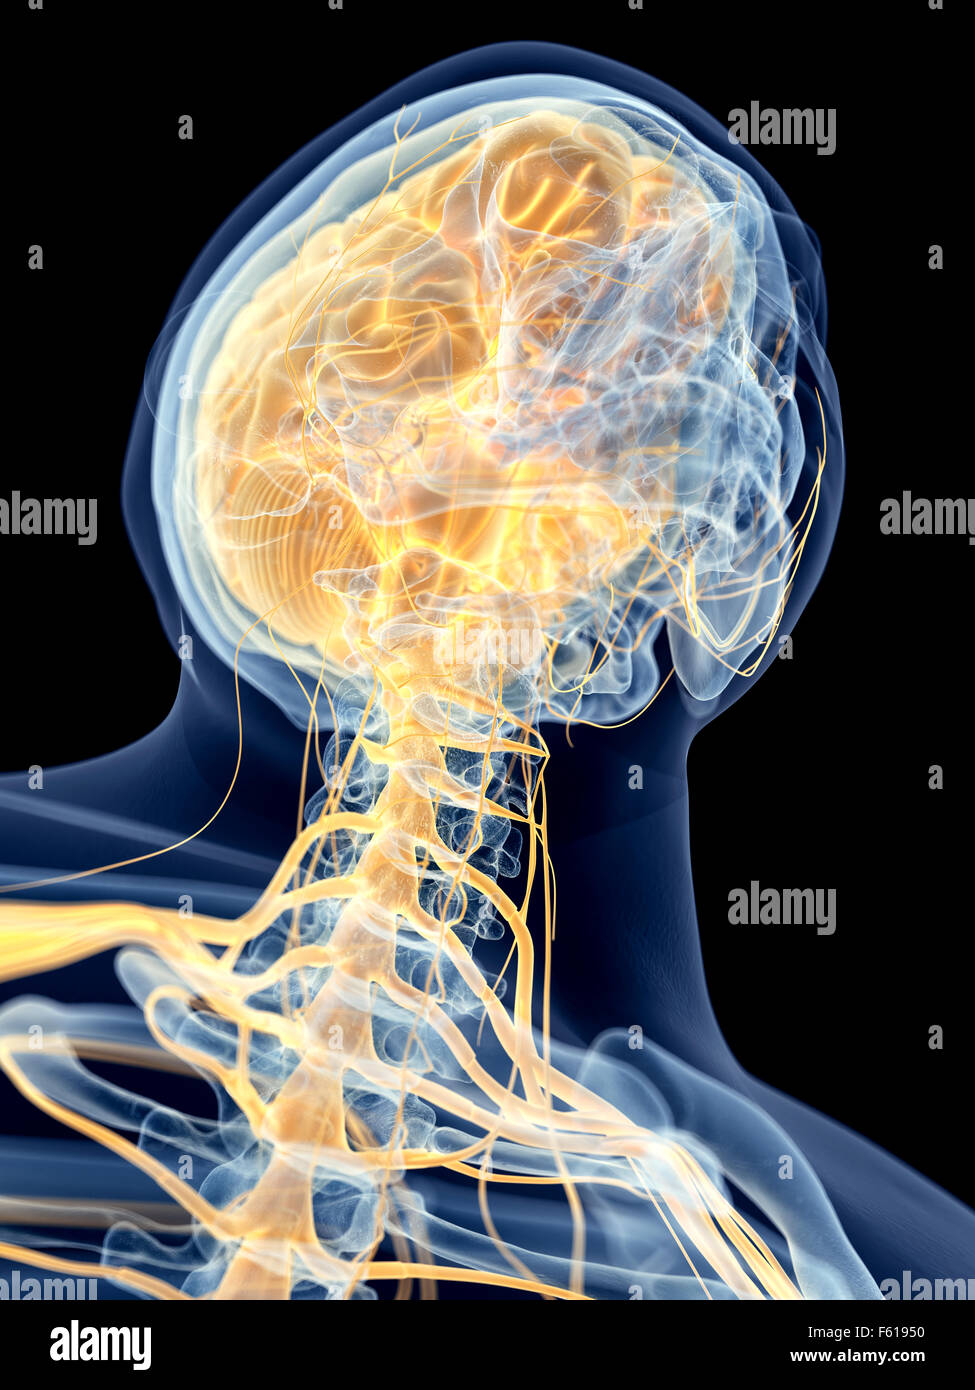 medically accurate illustration of the cervical nerves - Stock Image